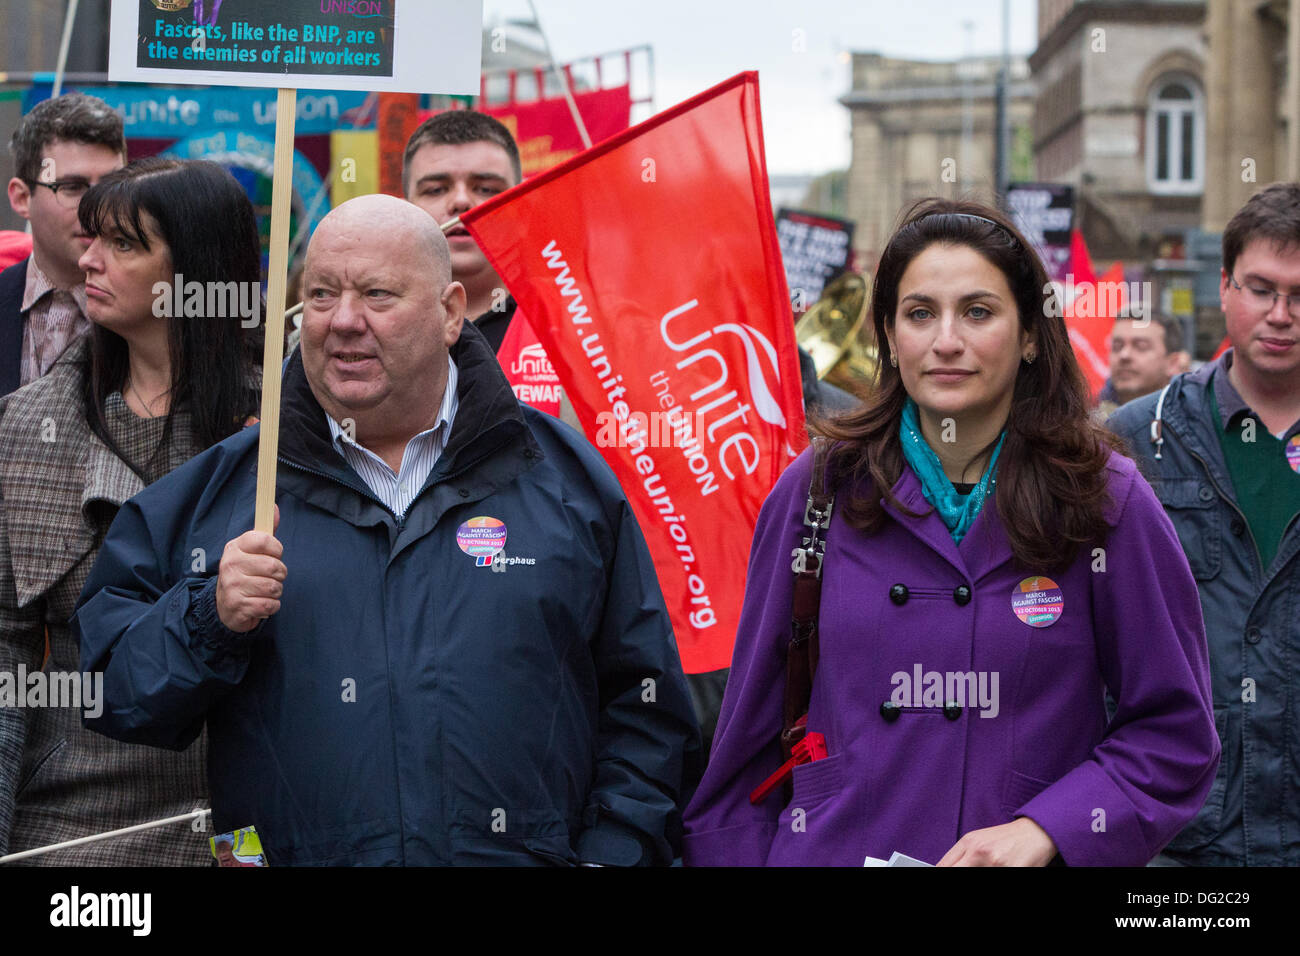 Hundreds of demonstrators accompanied by political figures including the Mayor of Liverpool Joe Anderson (left) and Shadow Minister for Public Health Luciana Berger (right) joined a march through Liverpool city centre on Saturday, October 12, 2013 which focused on the tagline 'Celebrating Not Dividing'. The demonstration which was called by Unite the Union, was held to spread the message that far-right British National Party (BNP) leader Nick Griffin must be defeated at the European Parliament elections in 2014. - Stock Image